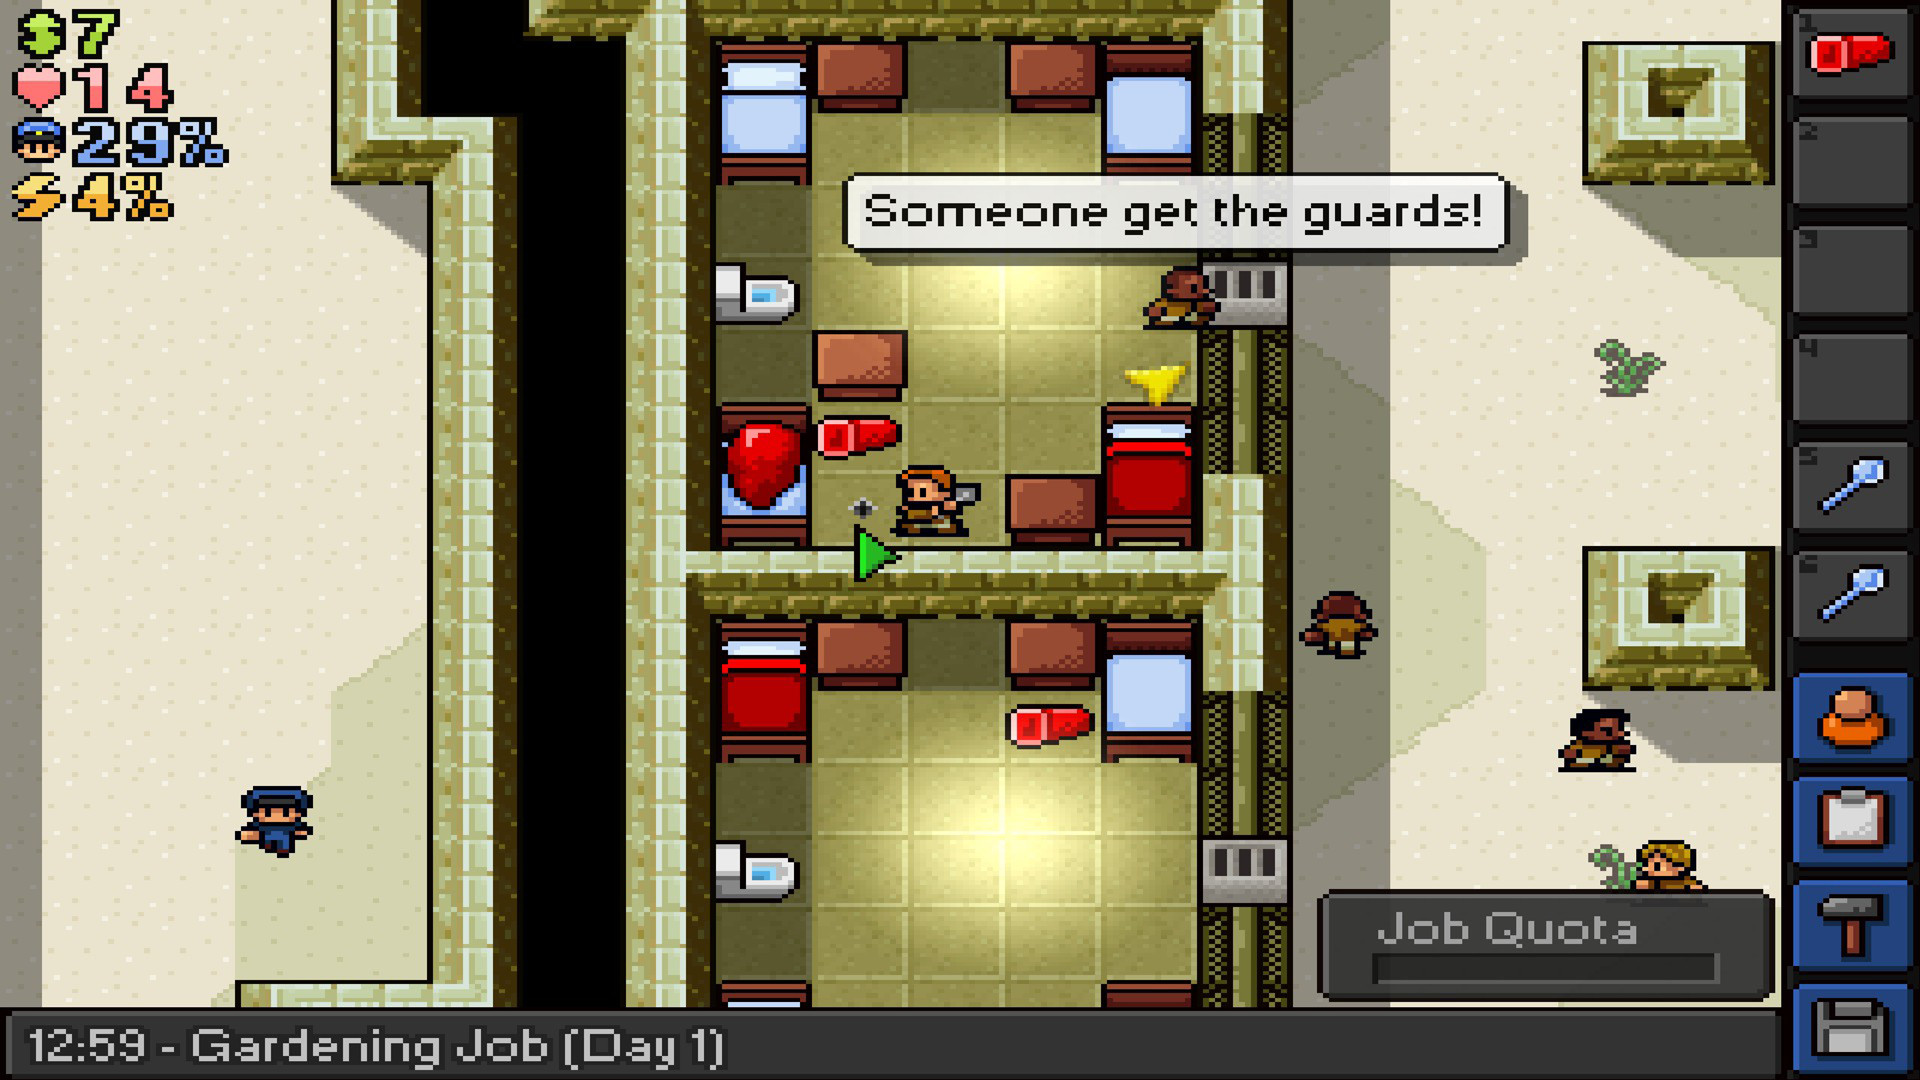 egs-dve-besplatnyh-igry-the-escapists-i-the-wolf-among-us